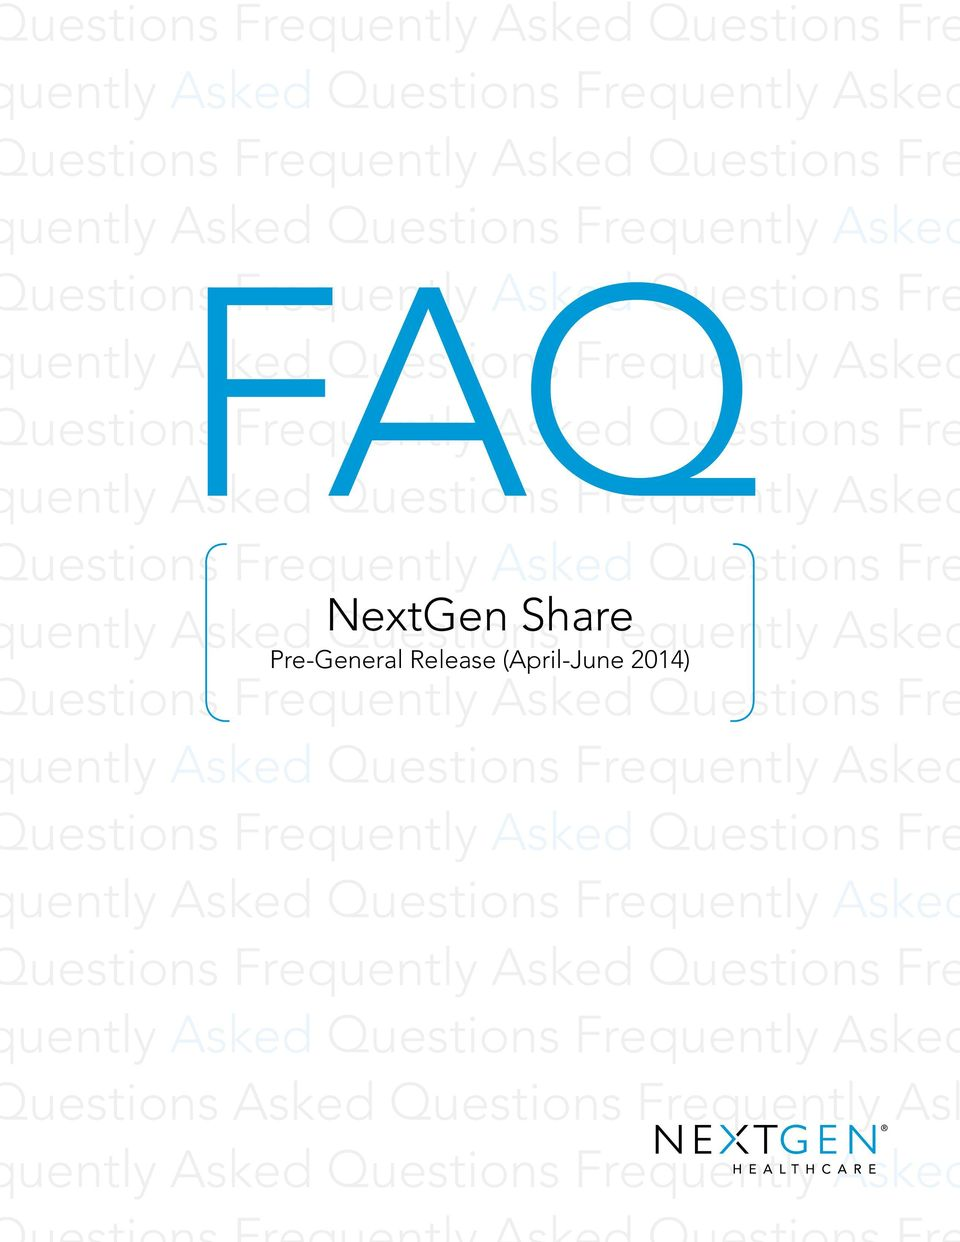 NextGen Questions Share Frequently Asked Pre-General Release (April-June 2014) uestions Frequently Asked